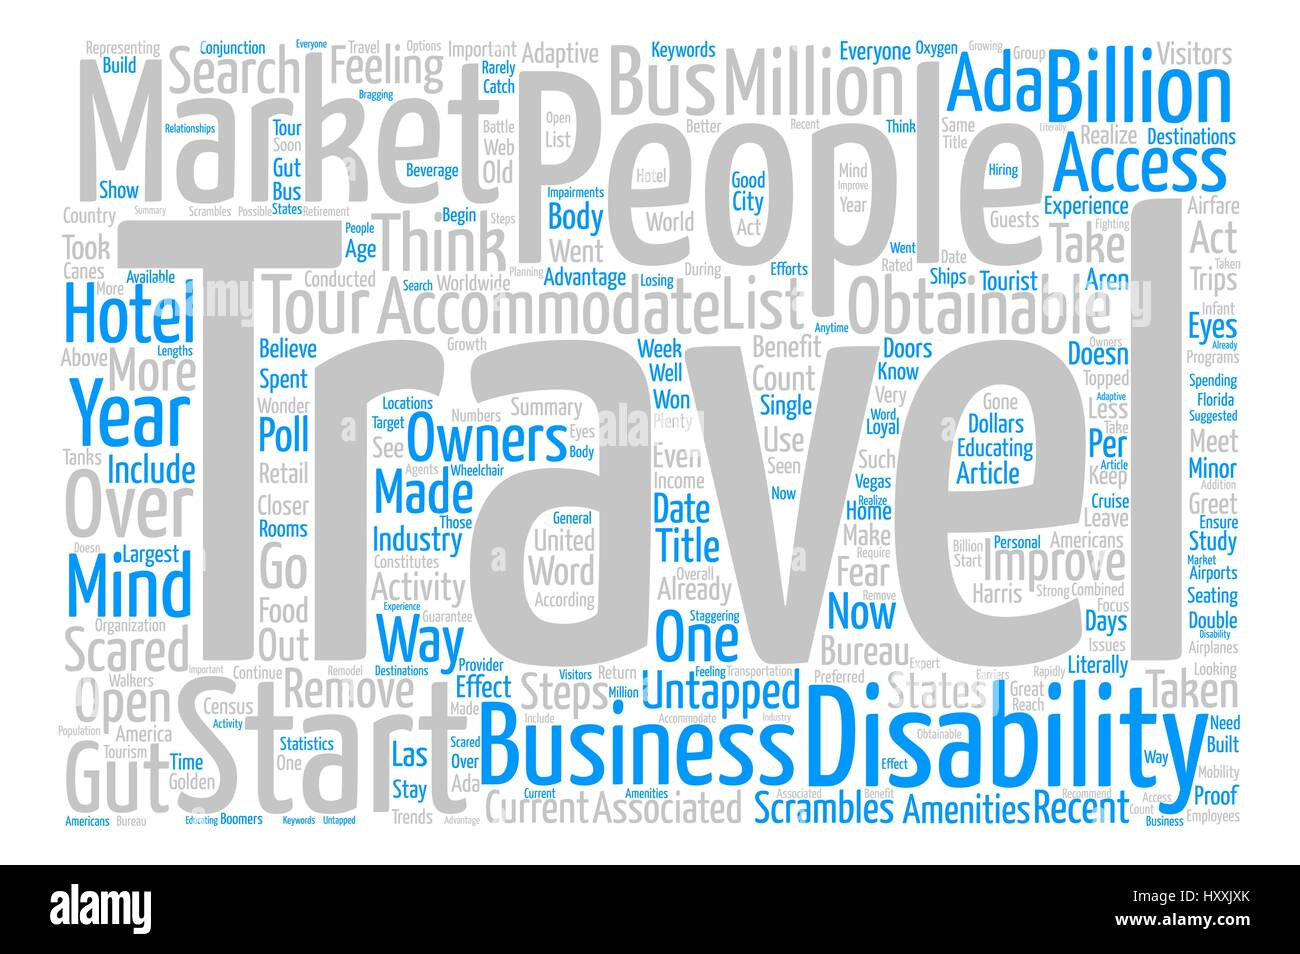 travelers with disabilities the untapped market text background word